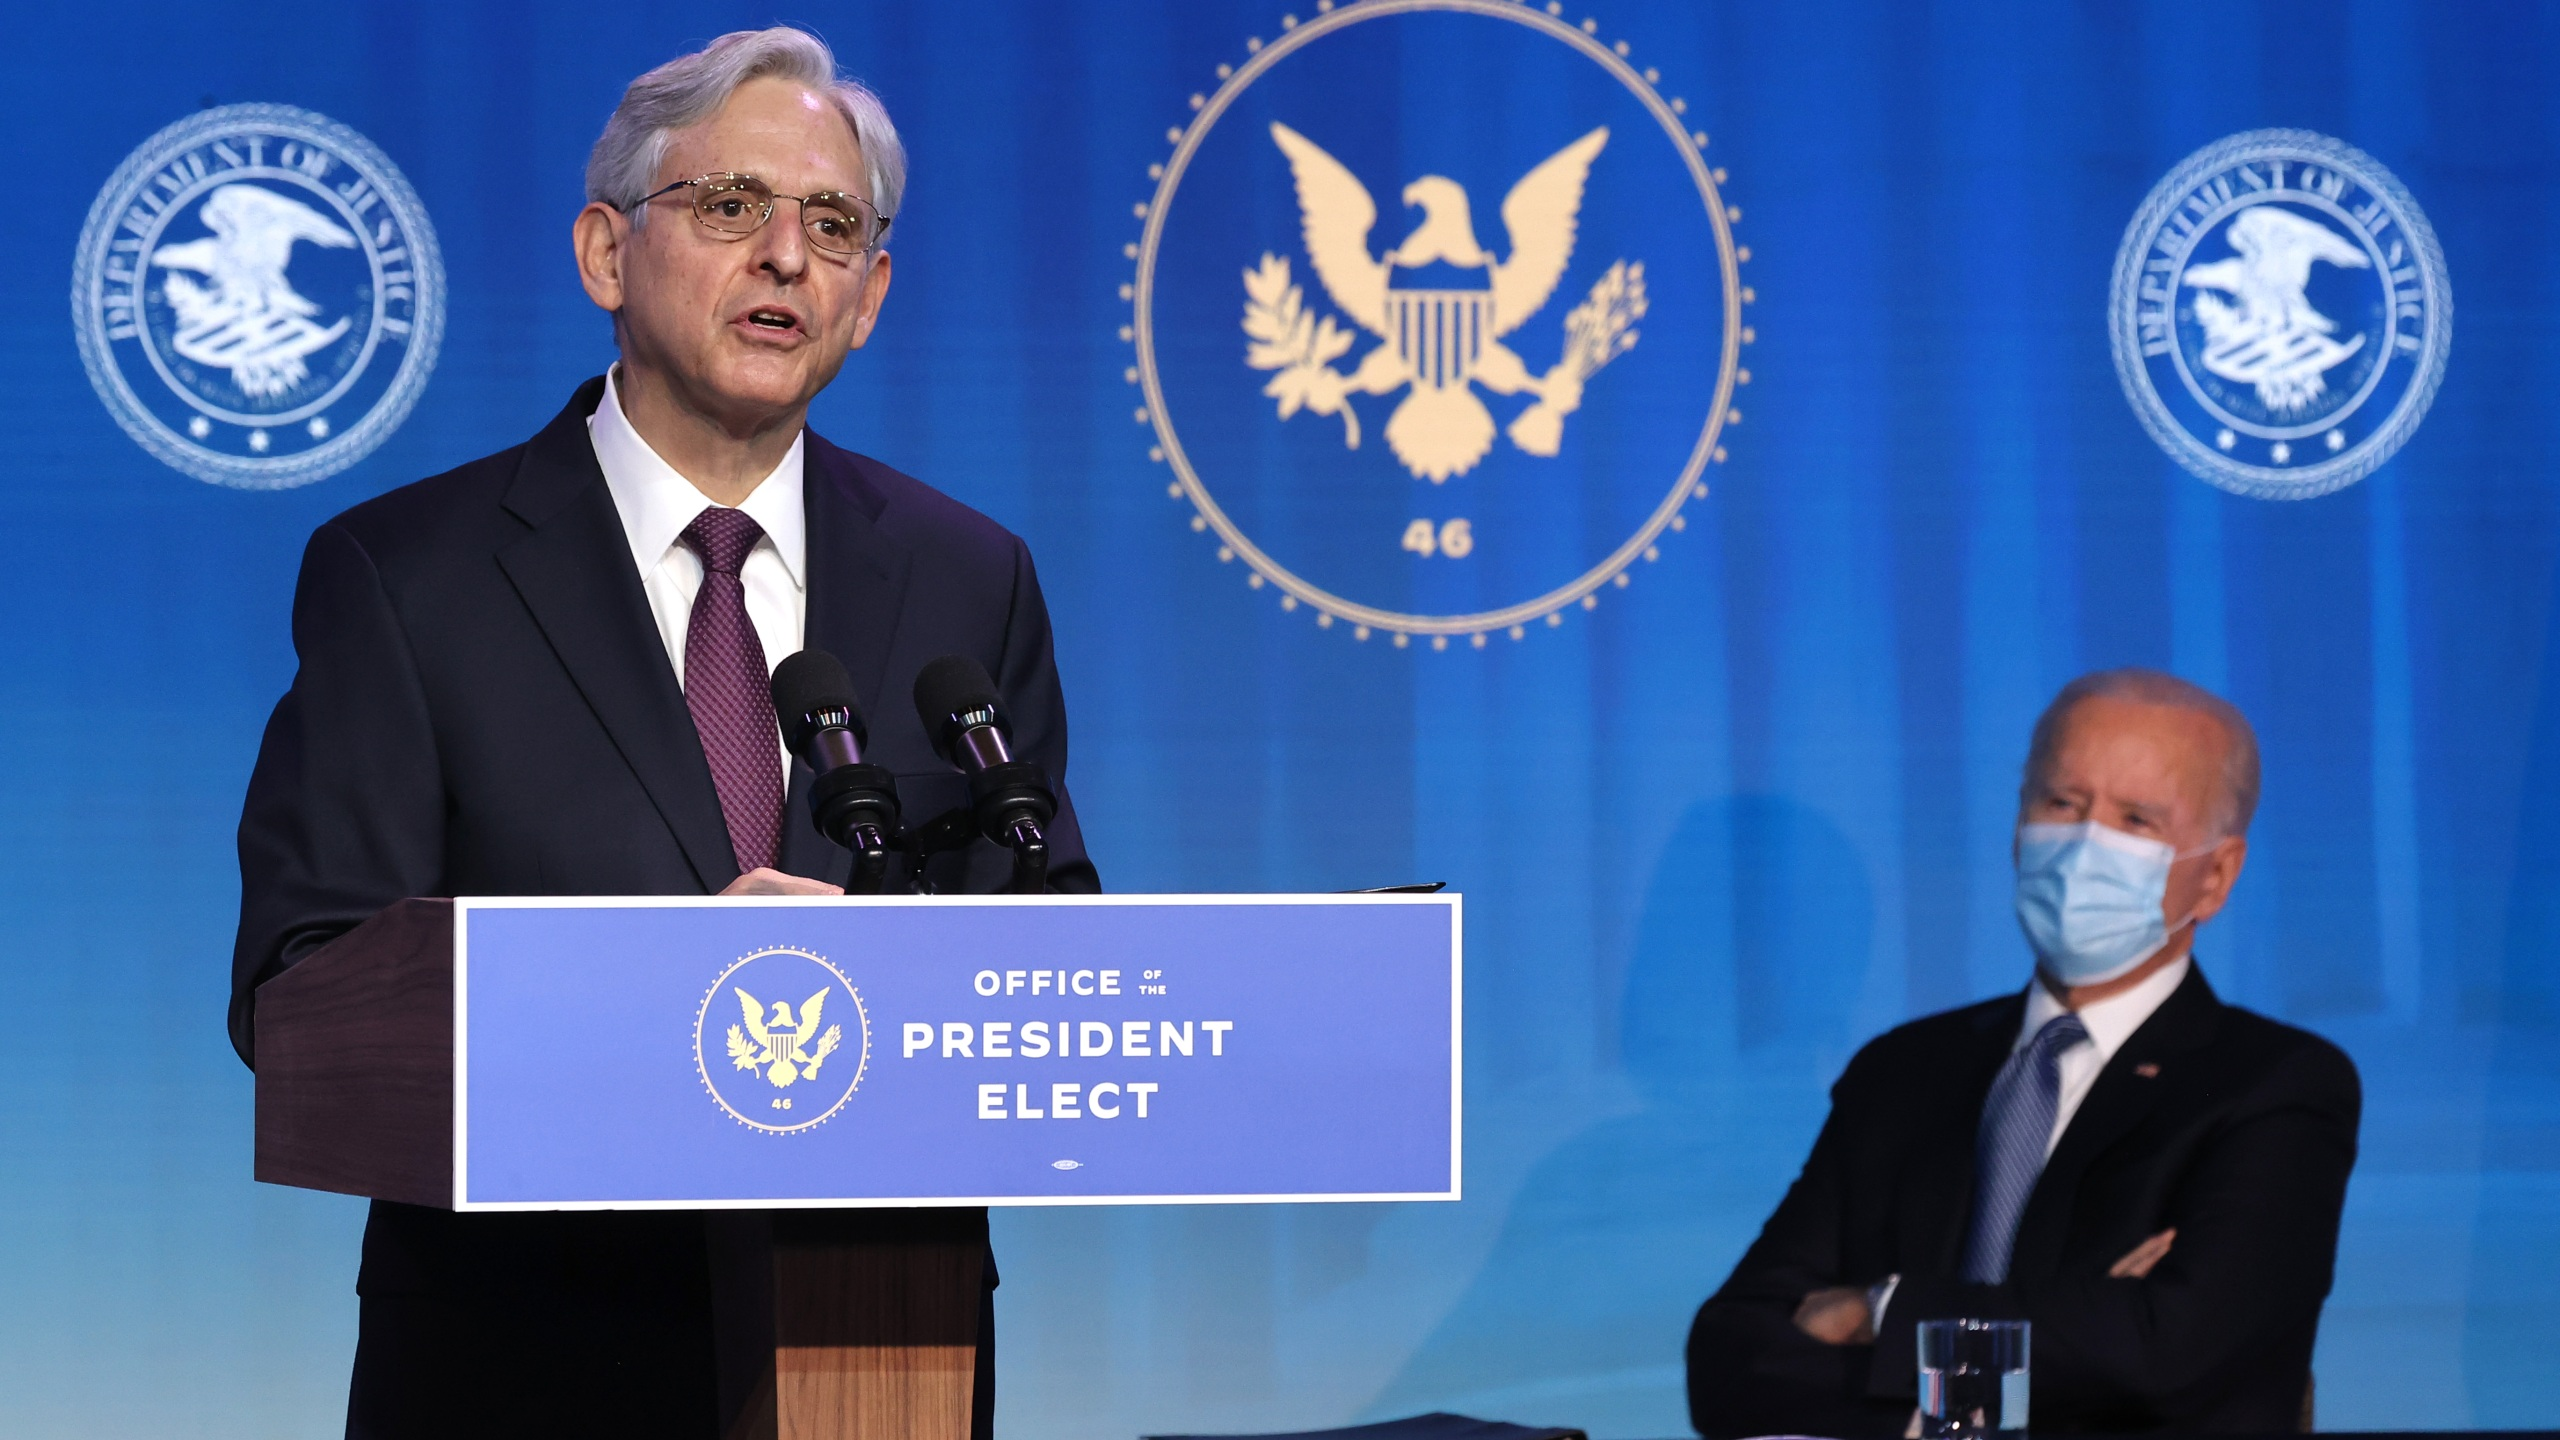 Federal Judge Merrick Garland delivers remarks after being nominated to be U.S. attorney general by President-elect Joe Biden at The Queen theater in Wilmington, Delaware on January 7, 2021. (Chip Somodevilla/Getty Images)